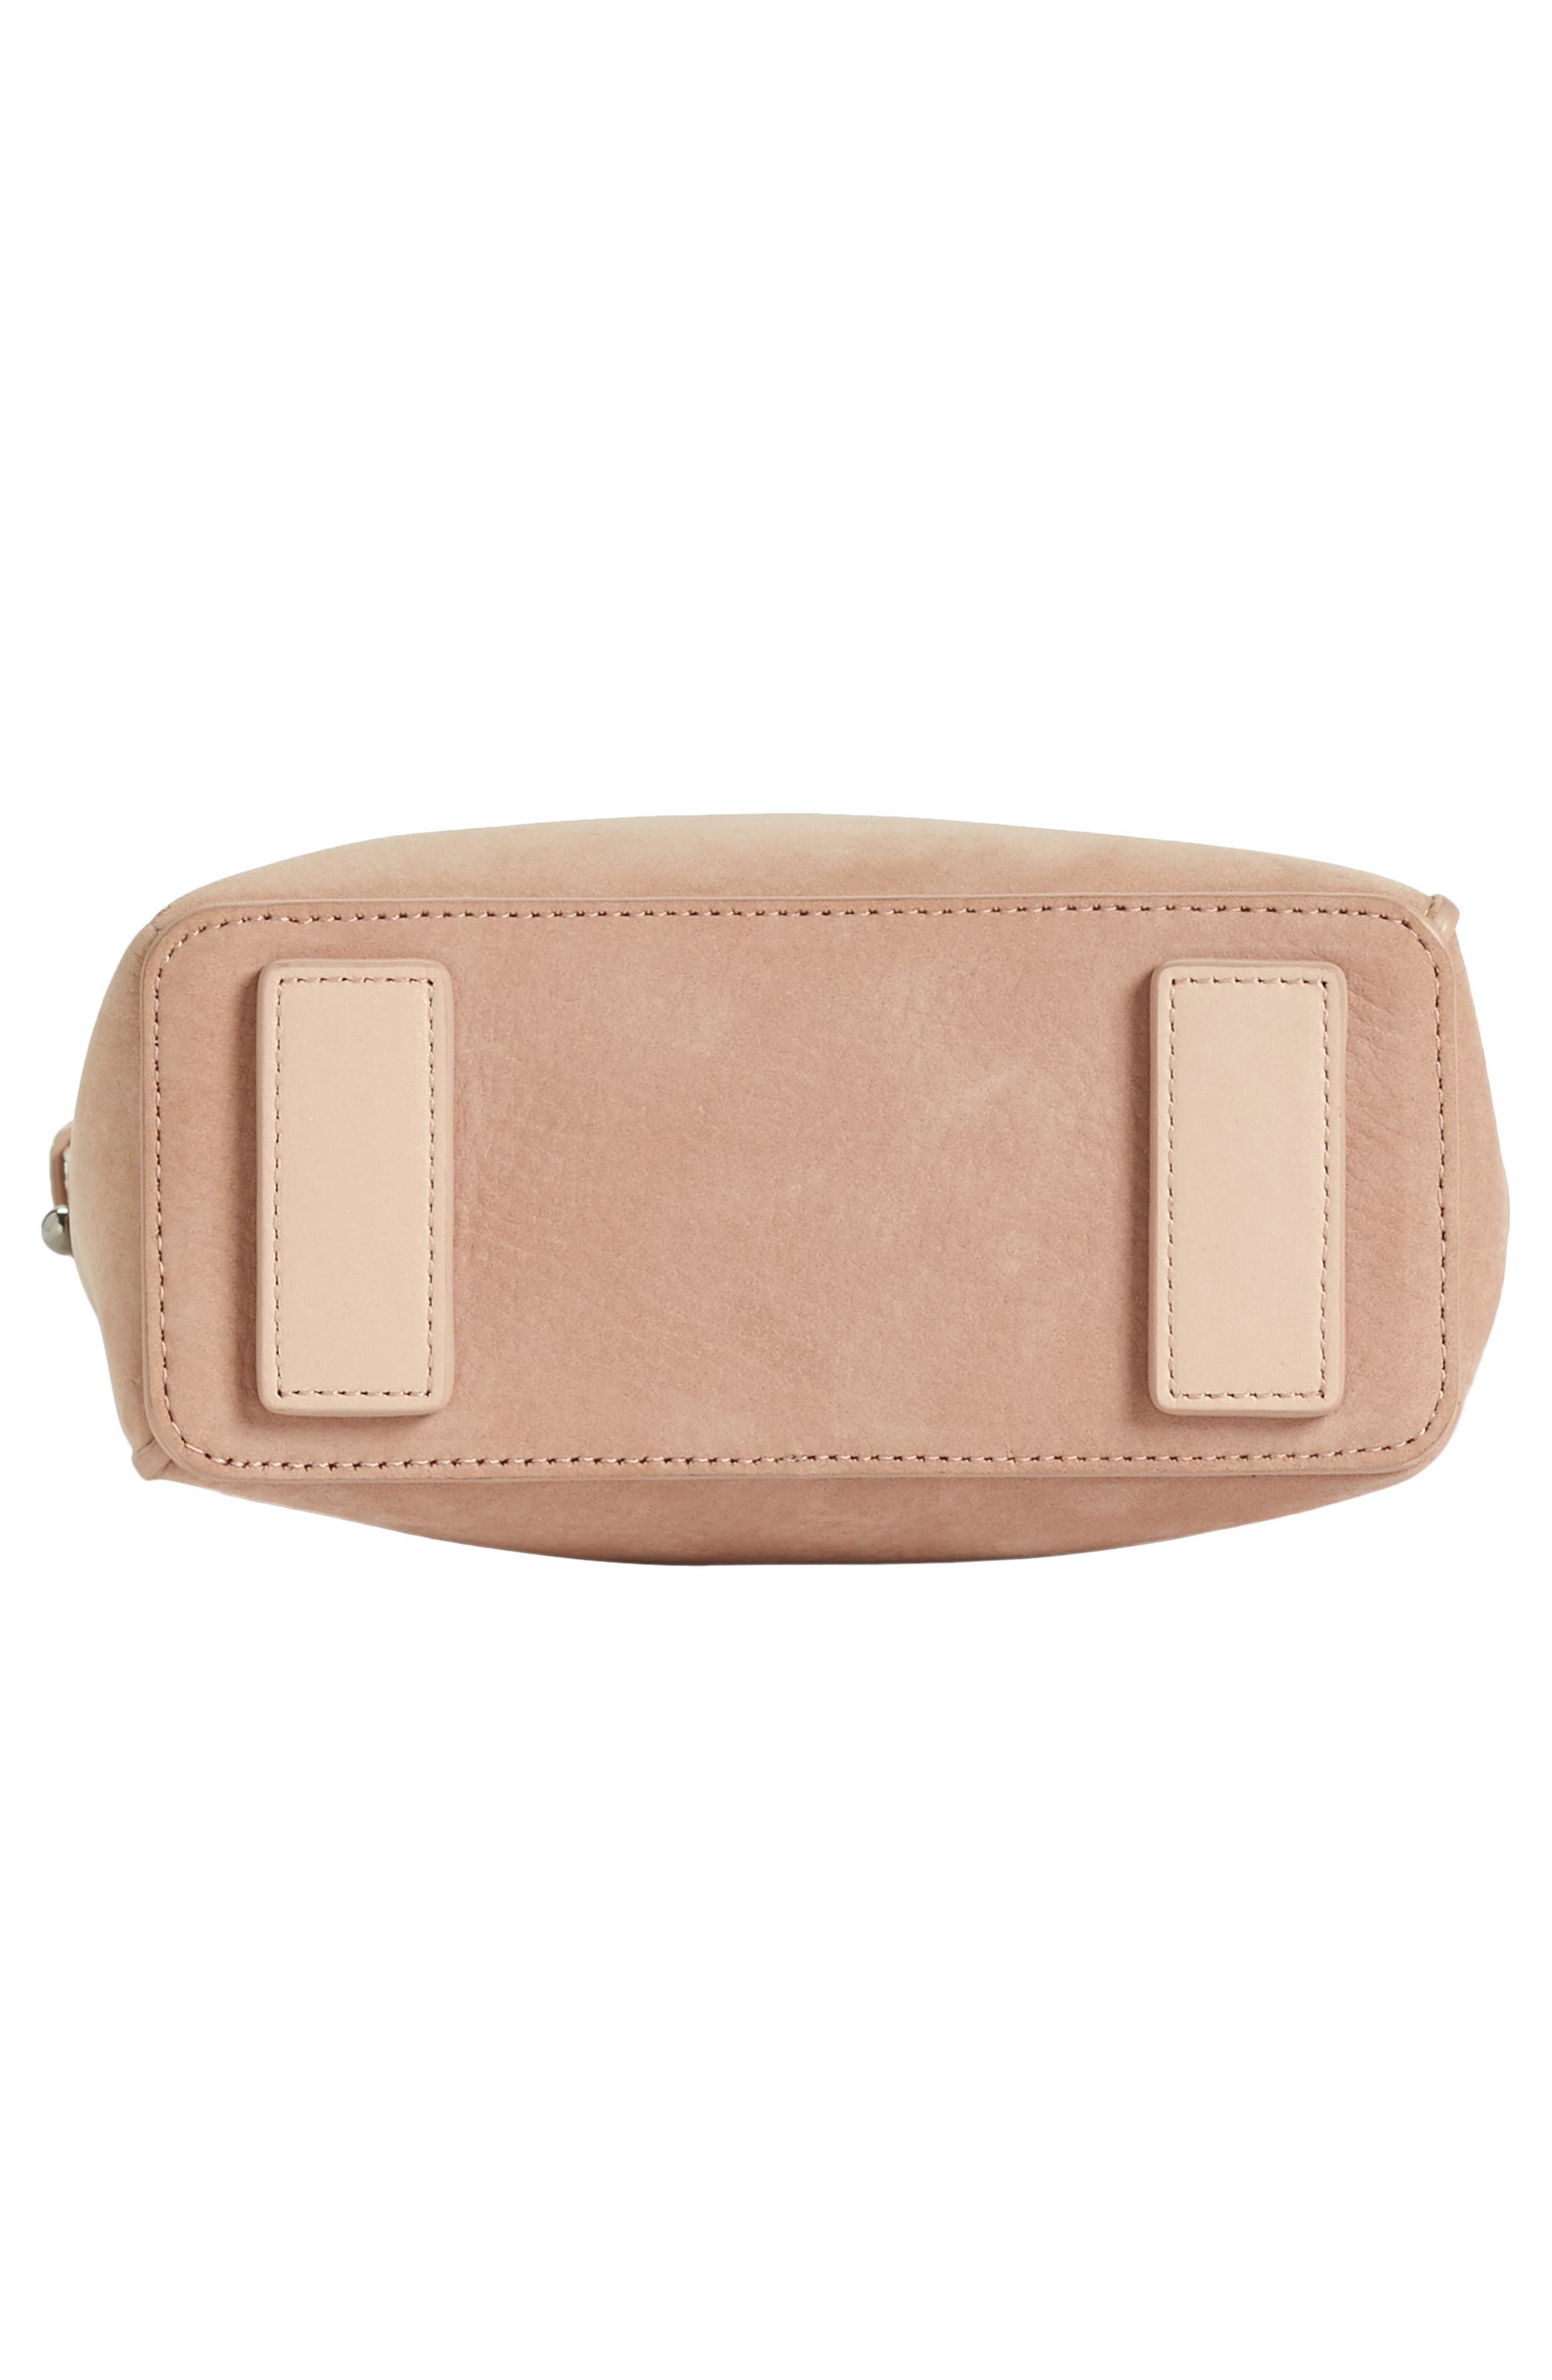 Mini Mast Leather North/South Tote,                             Alternate thumbnail 7, color,                             NUDE PINK